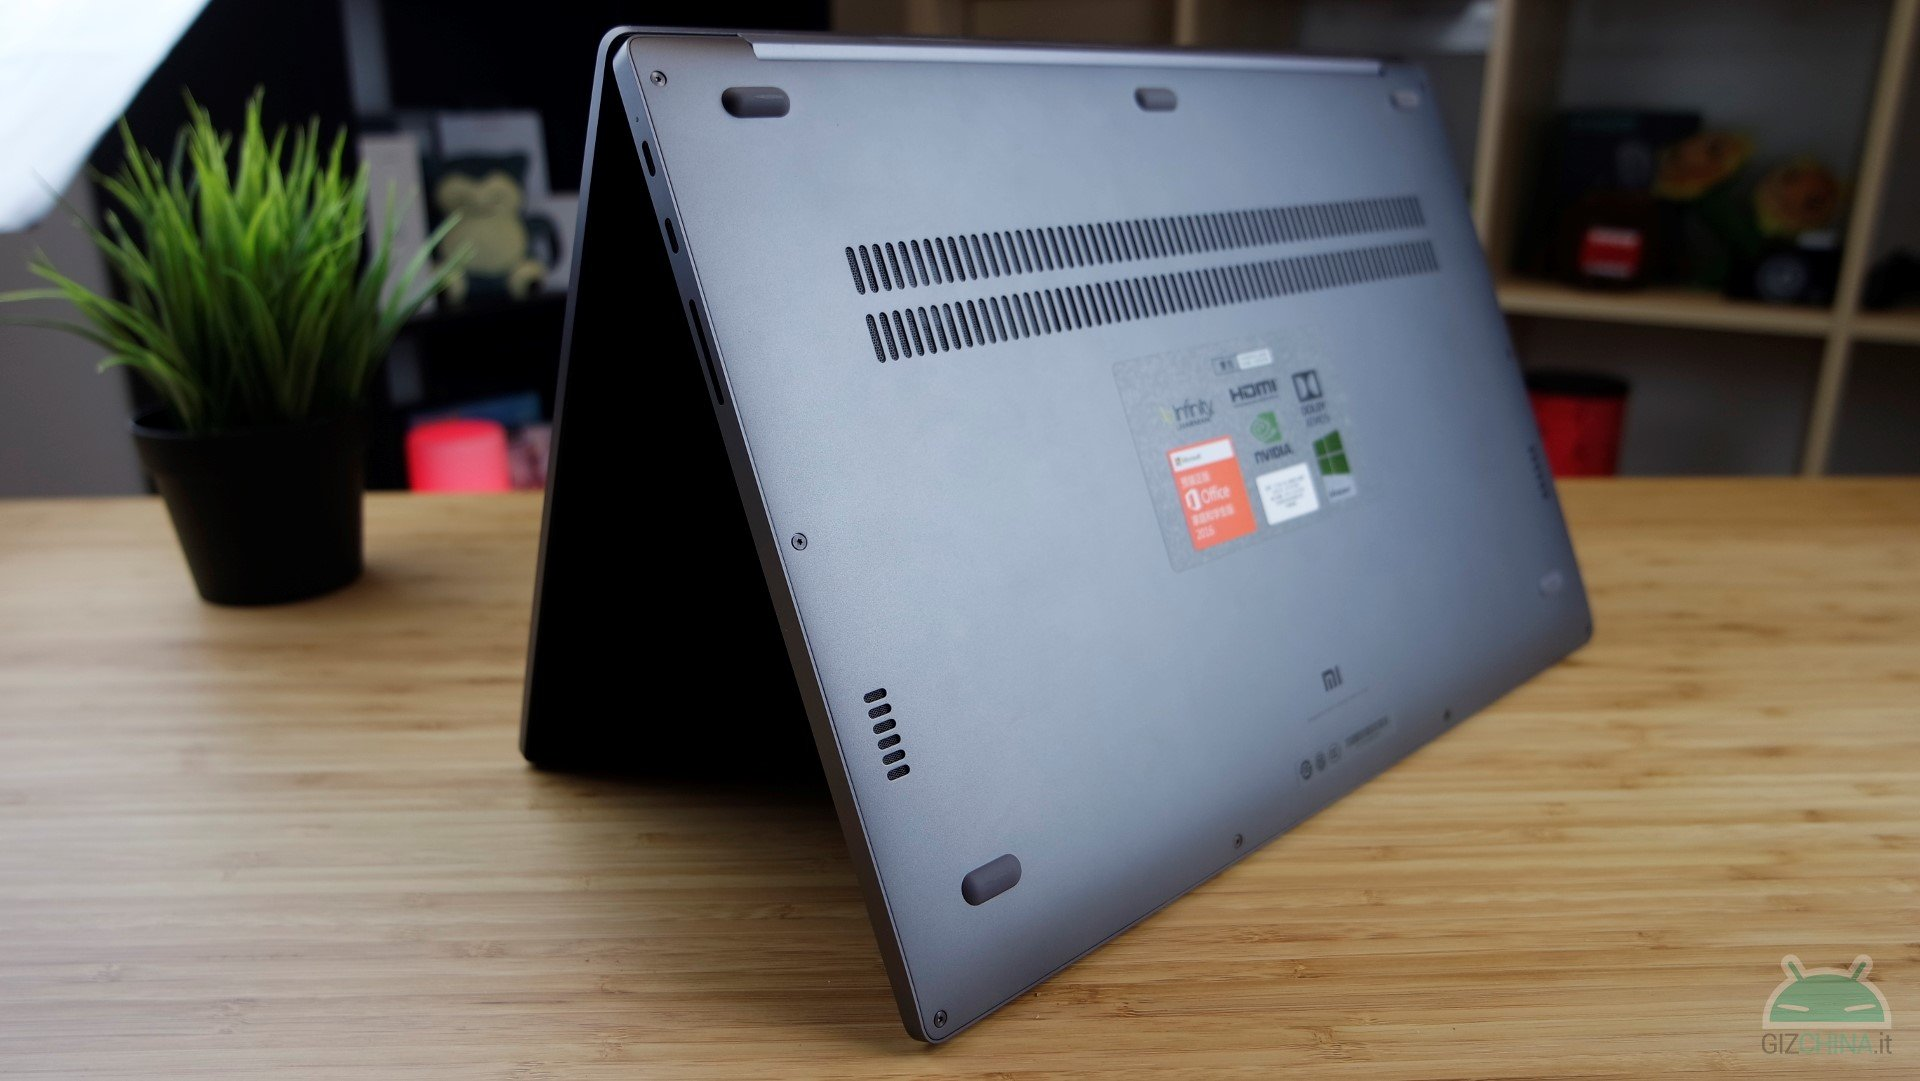 Recensione Xiaomi Mi Notebook Pro 15.6 GizChina.it